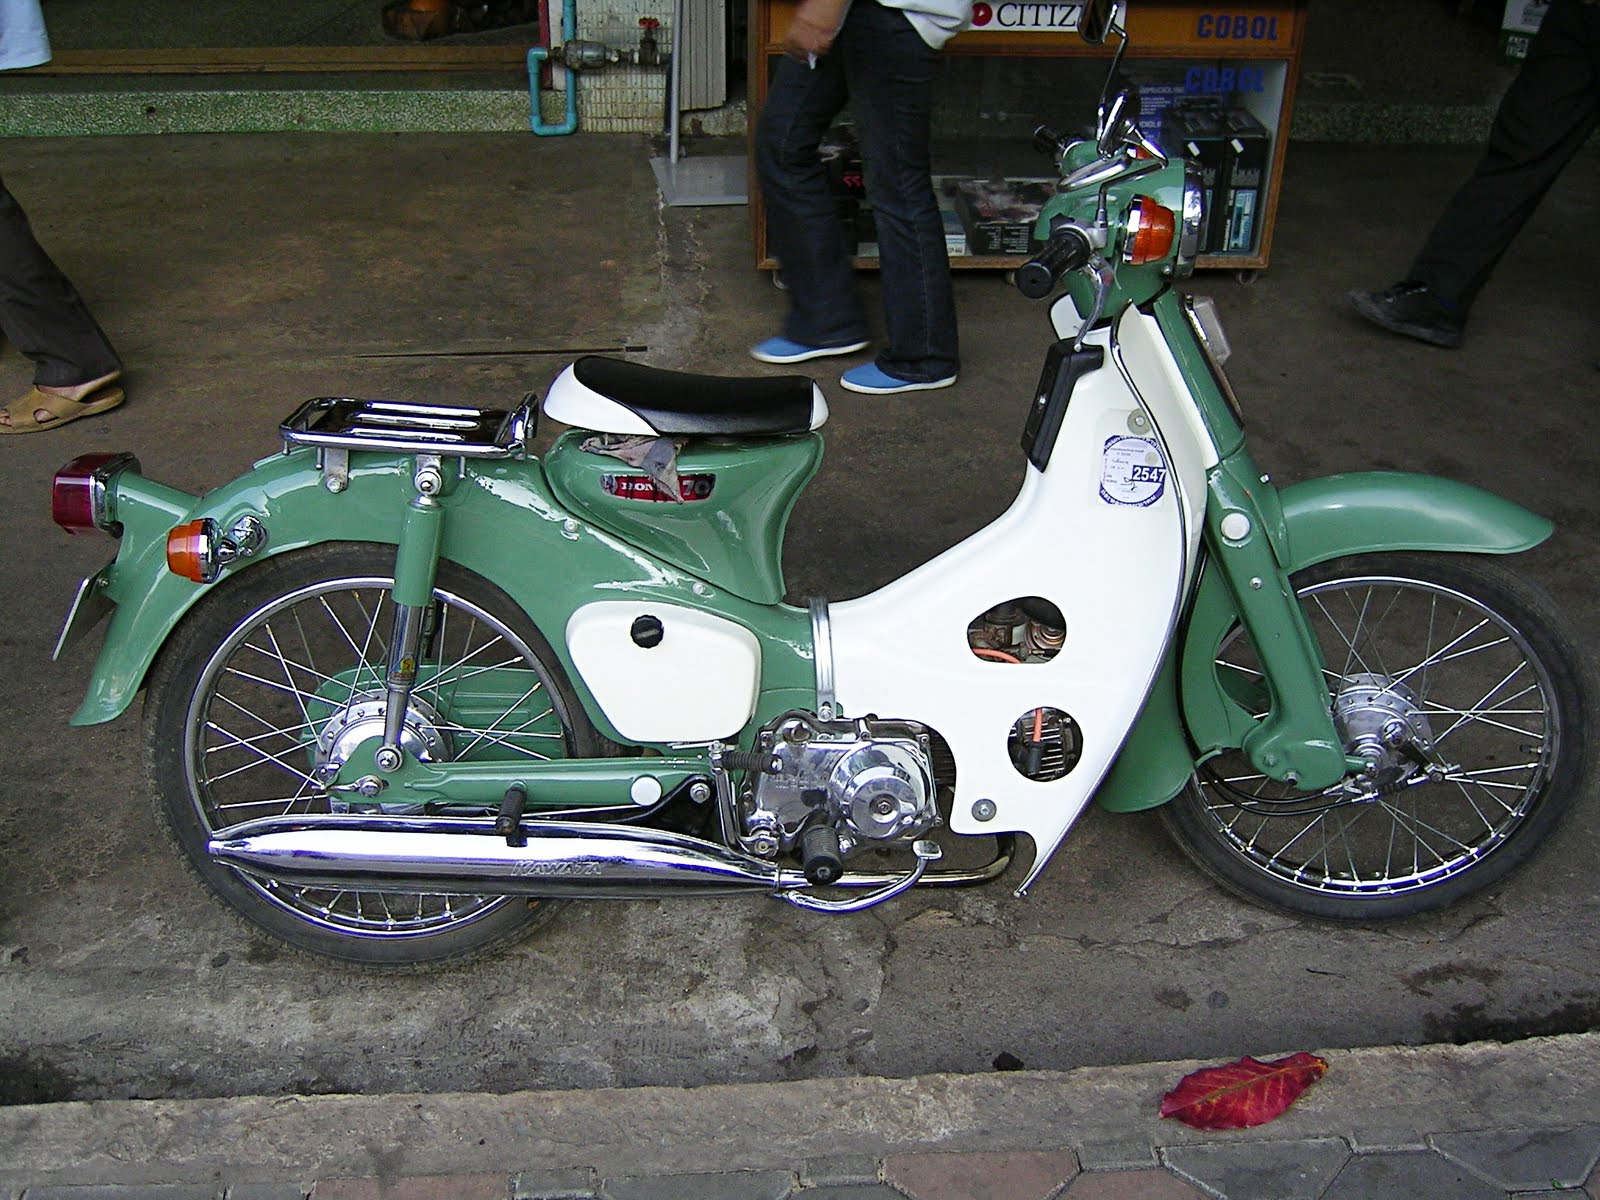 About Motorcycle: August 2010